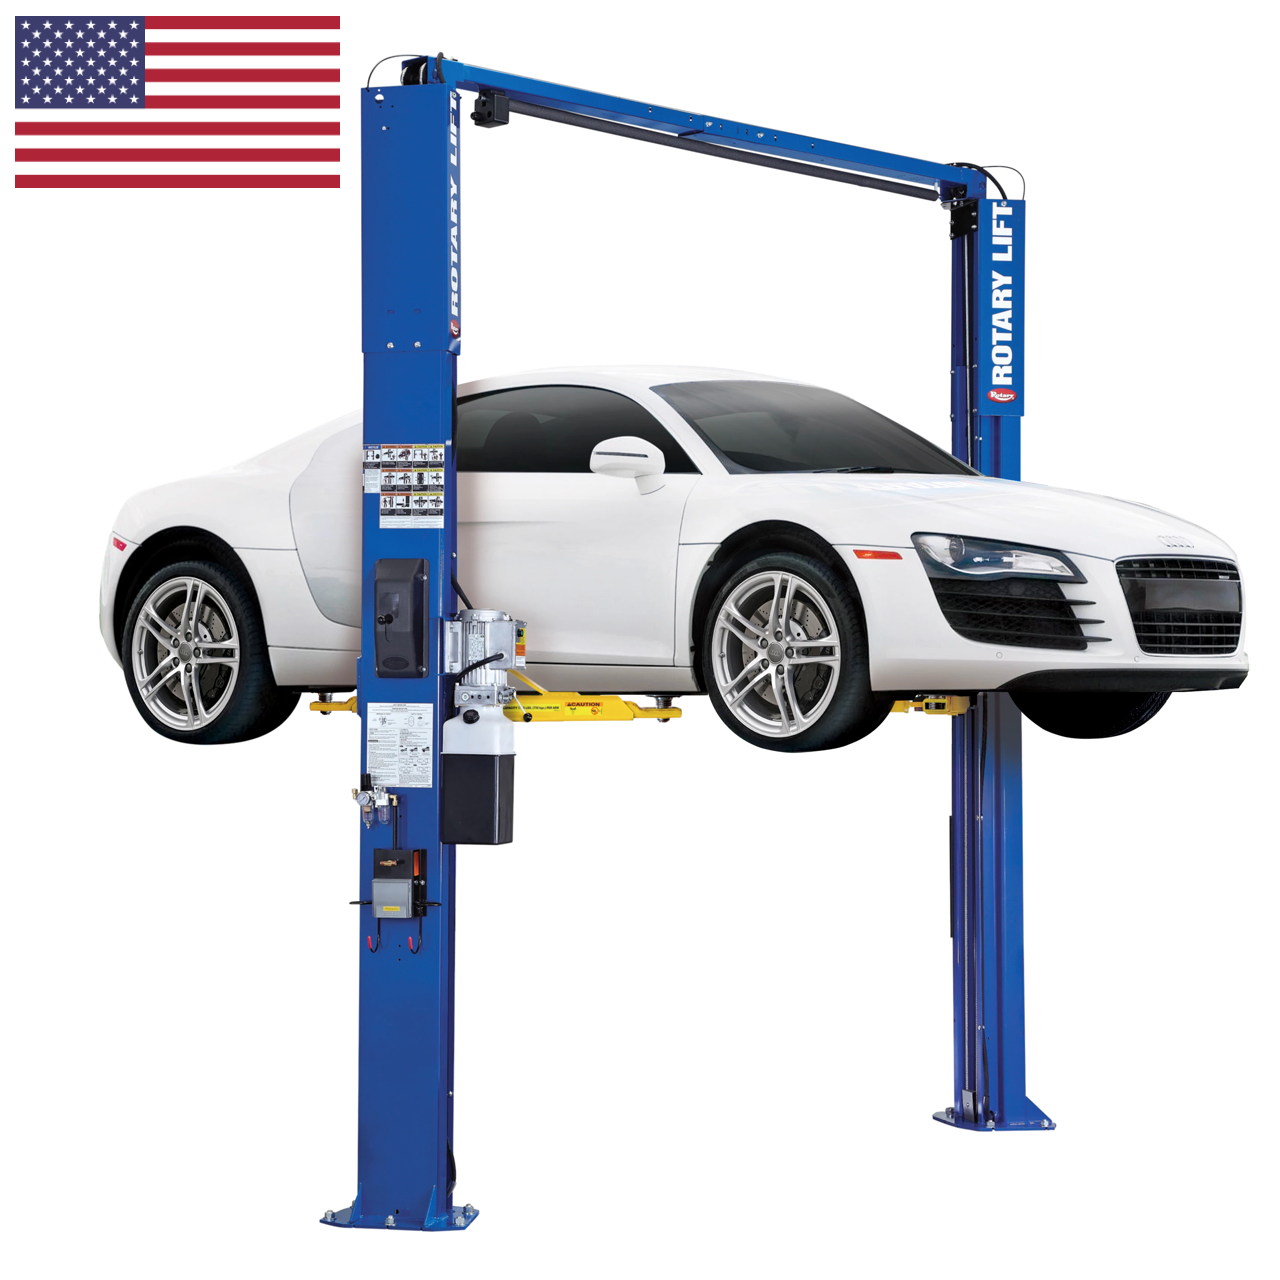 Rotary® SPOA7-LPA Certified Overhead 2-Post Lift (optional work station shown)